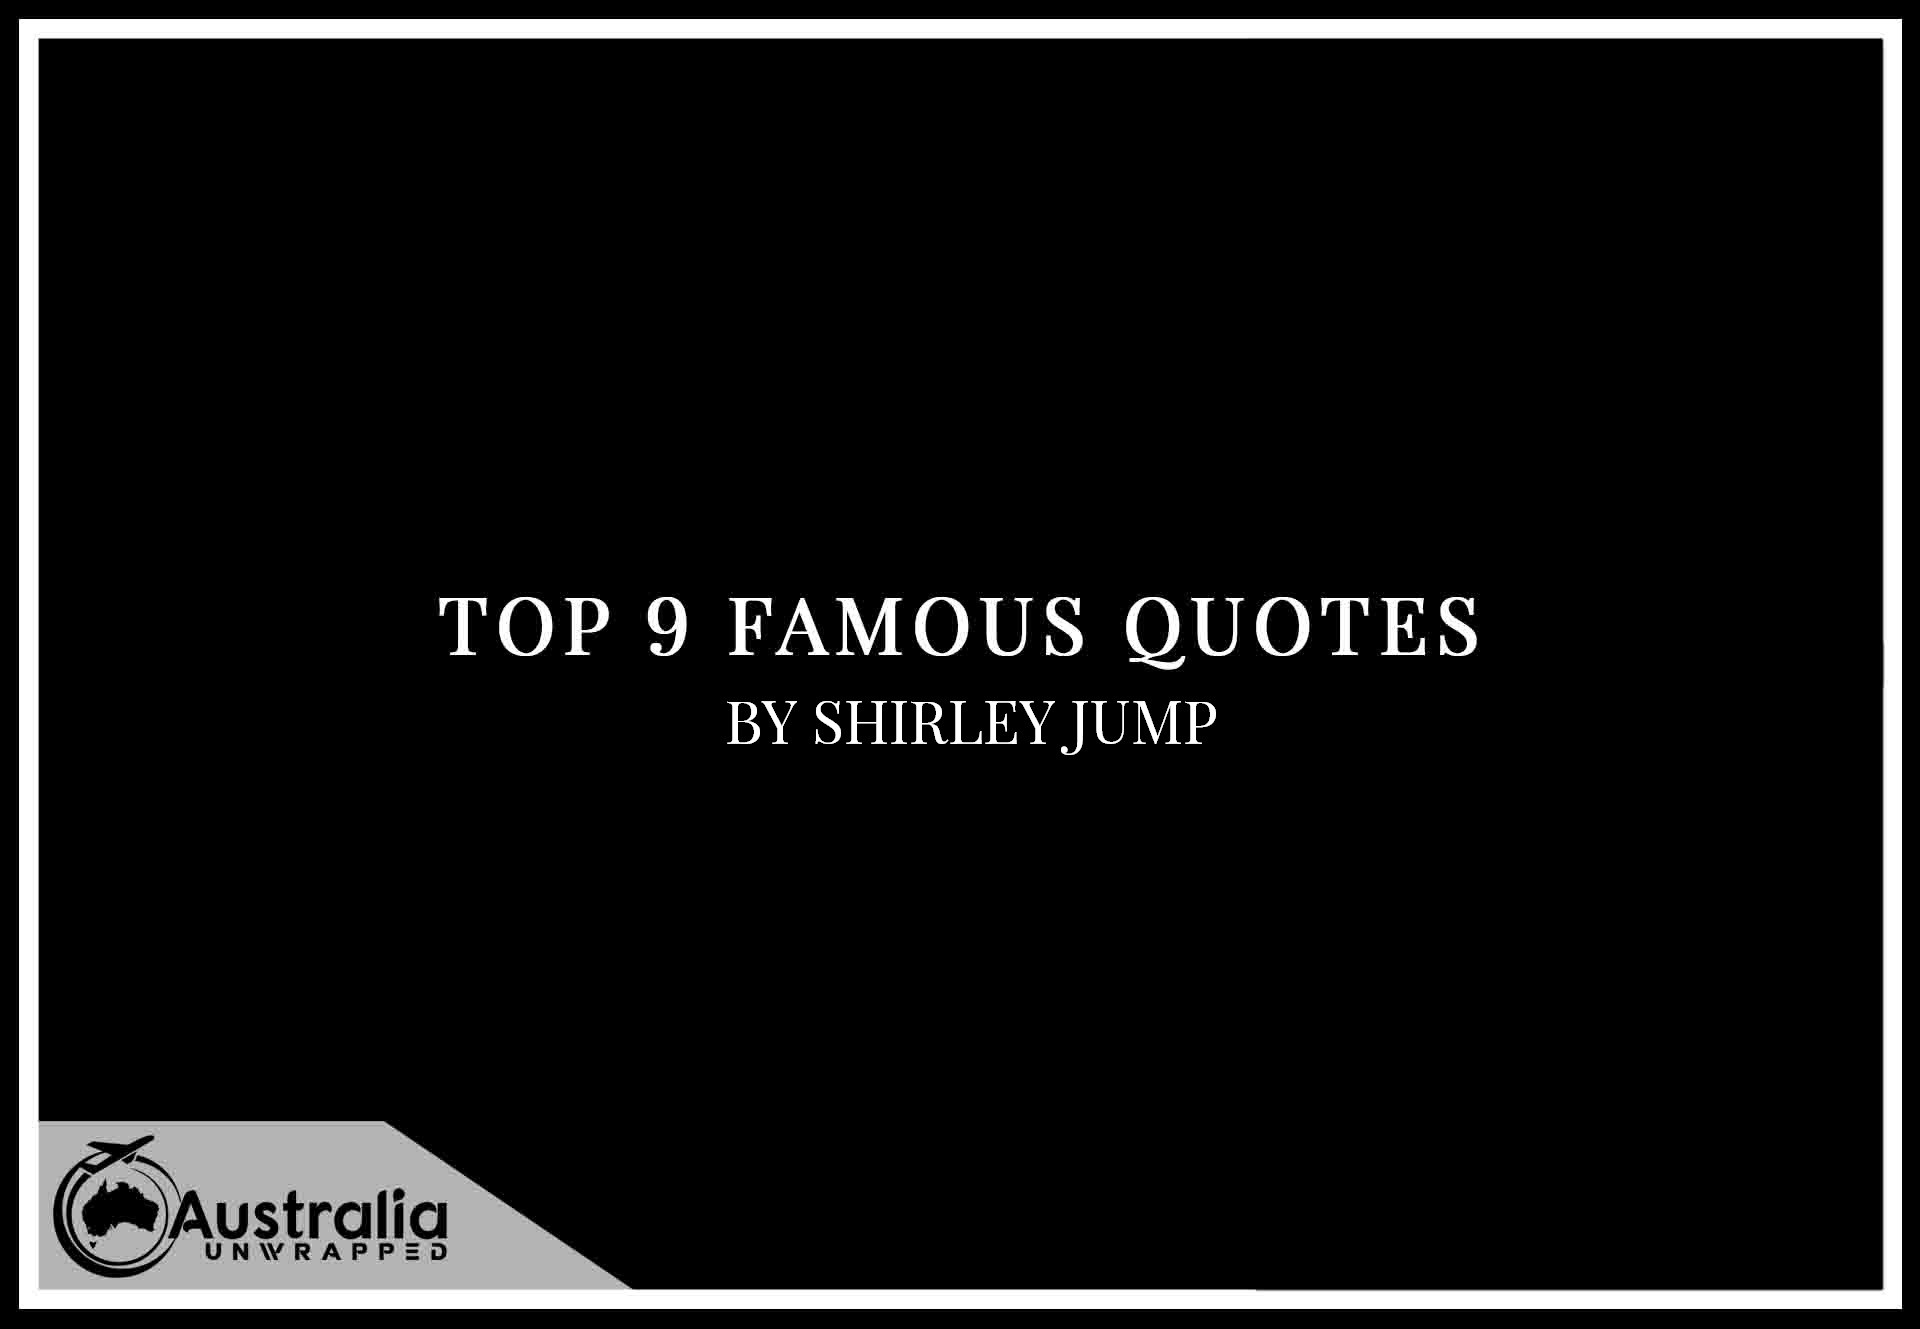 Top 9 Famous Quotes by Author Shirley Jump